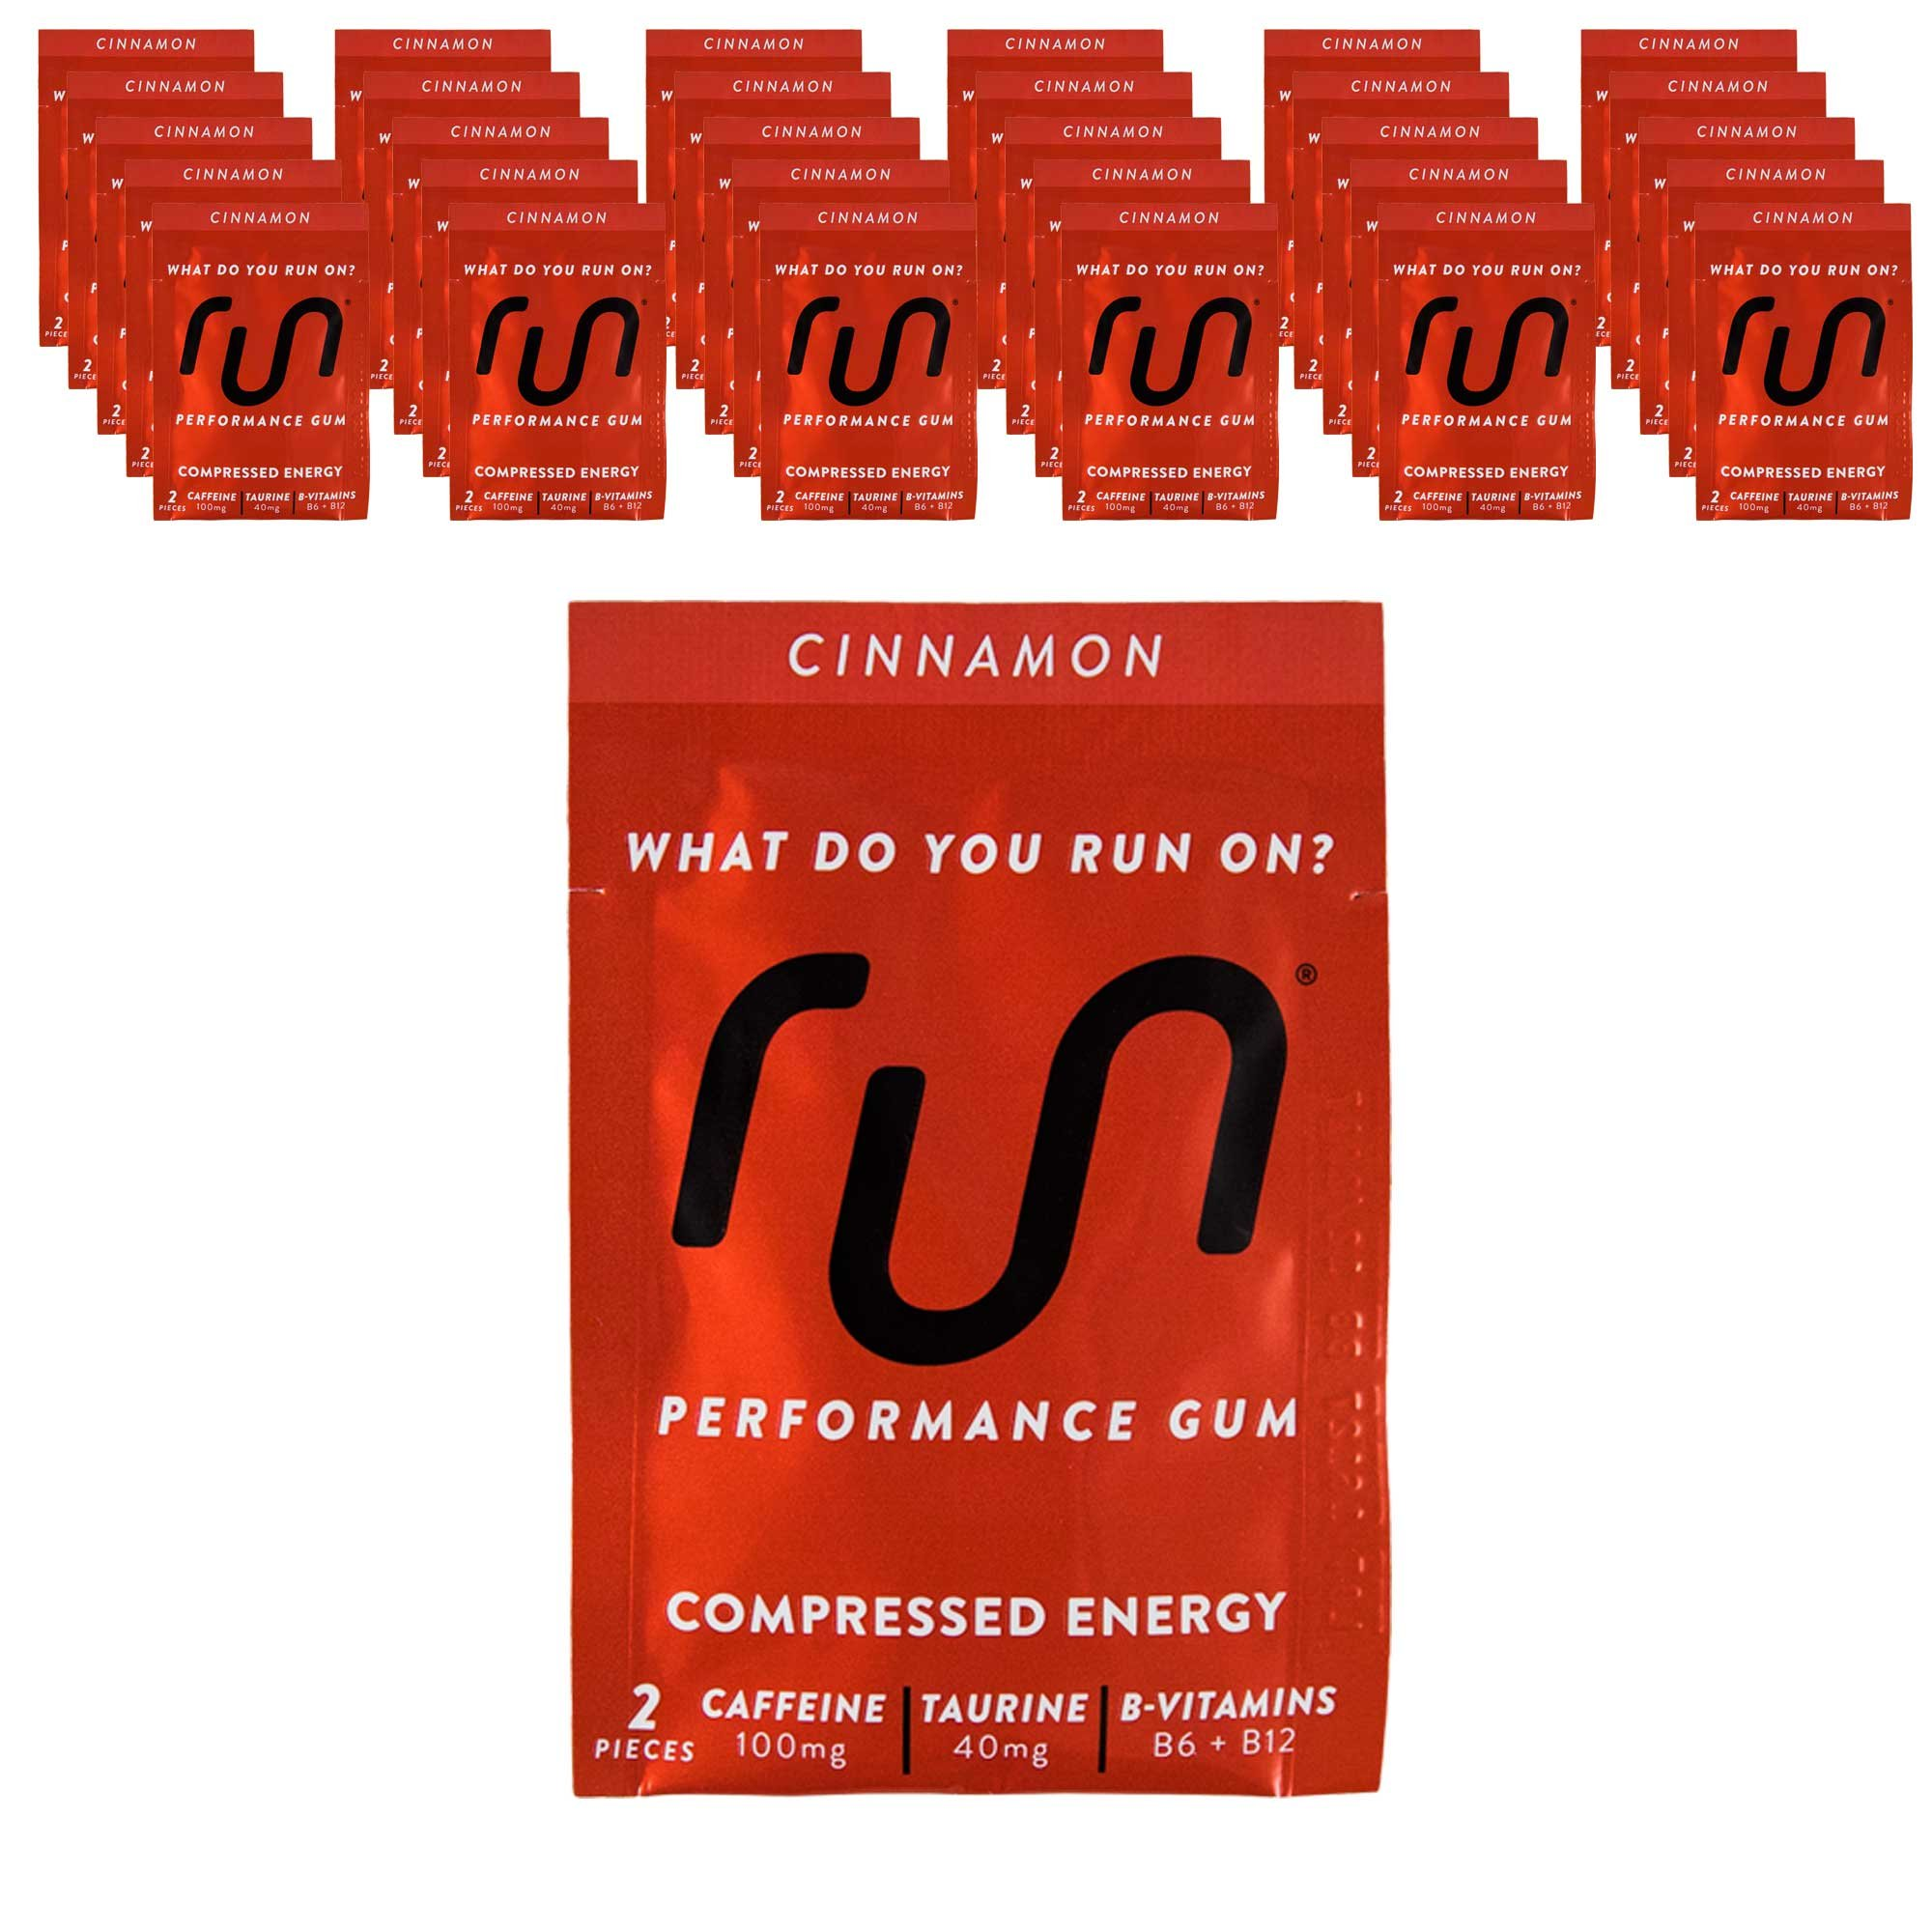 RUN GUM Cinnamon Energy Gum 50mg Caffeine Taurine & B-Vitamins (30pk), 2 Pieces = 1 coffee/Energy drink, Quick Energy Boost